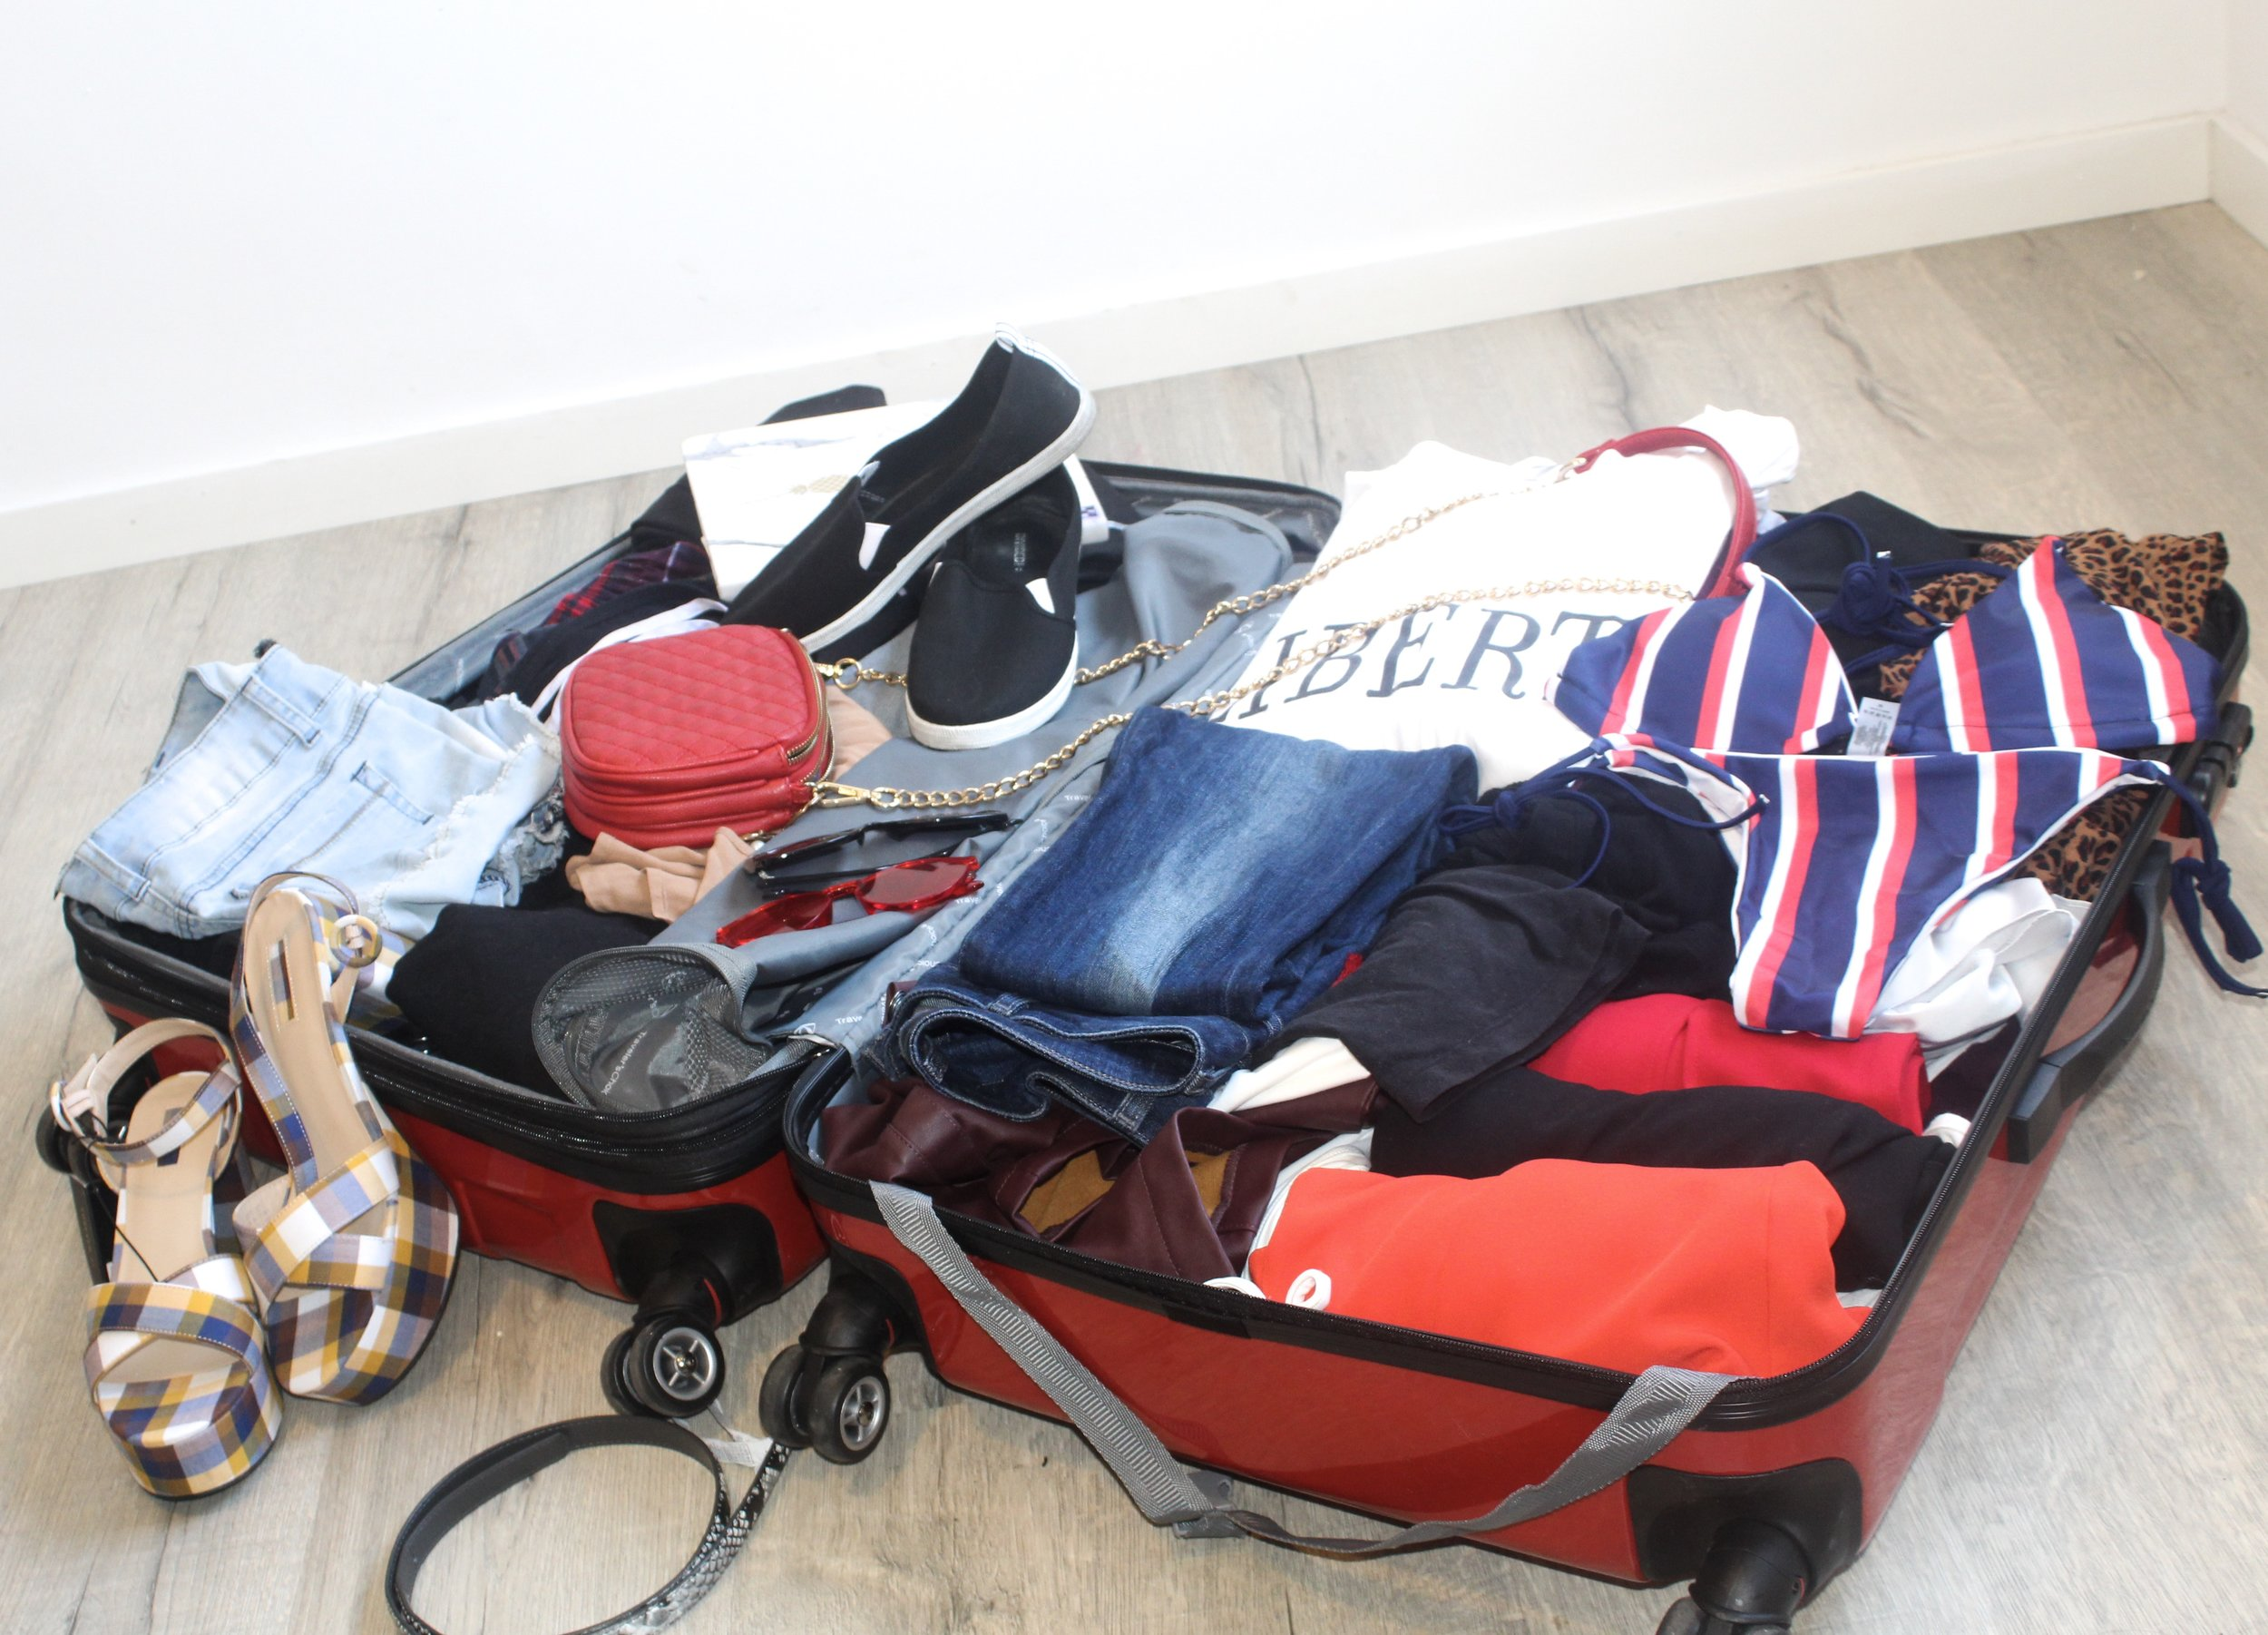 What to pack for a summer abroad - My tips and tricks for getting the most out of your packing decisions